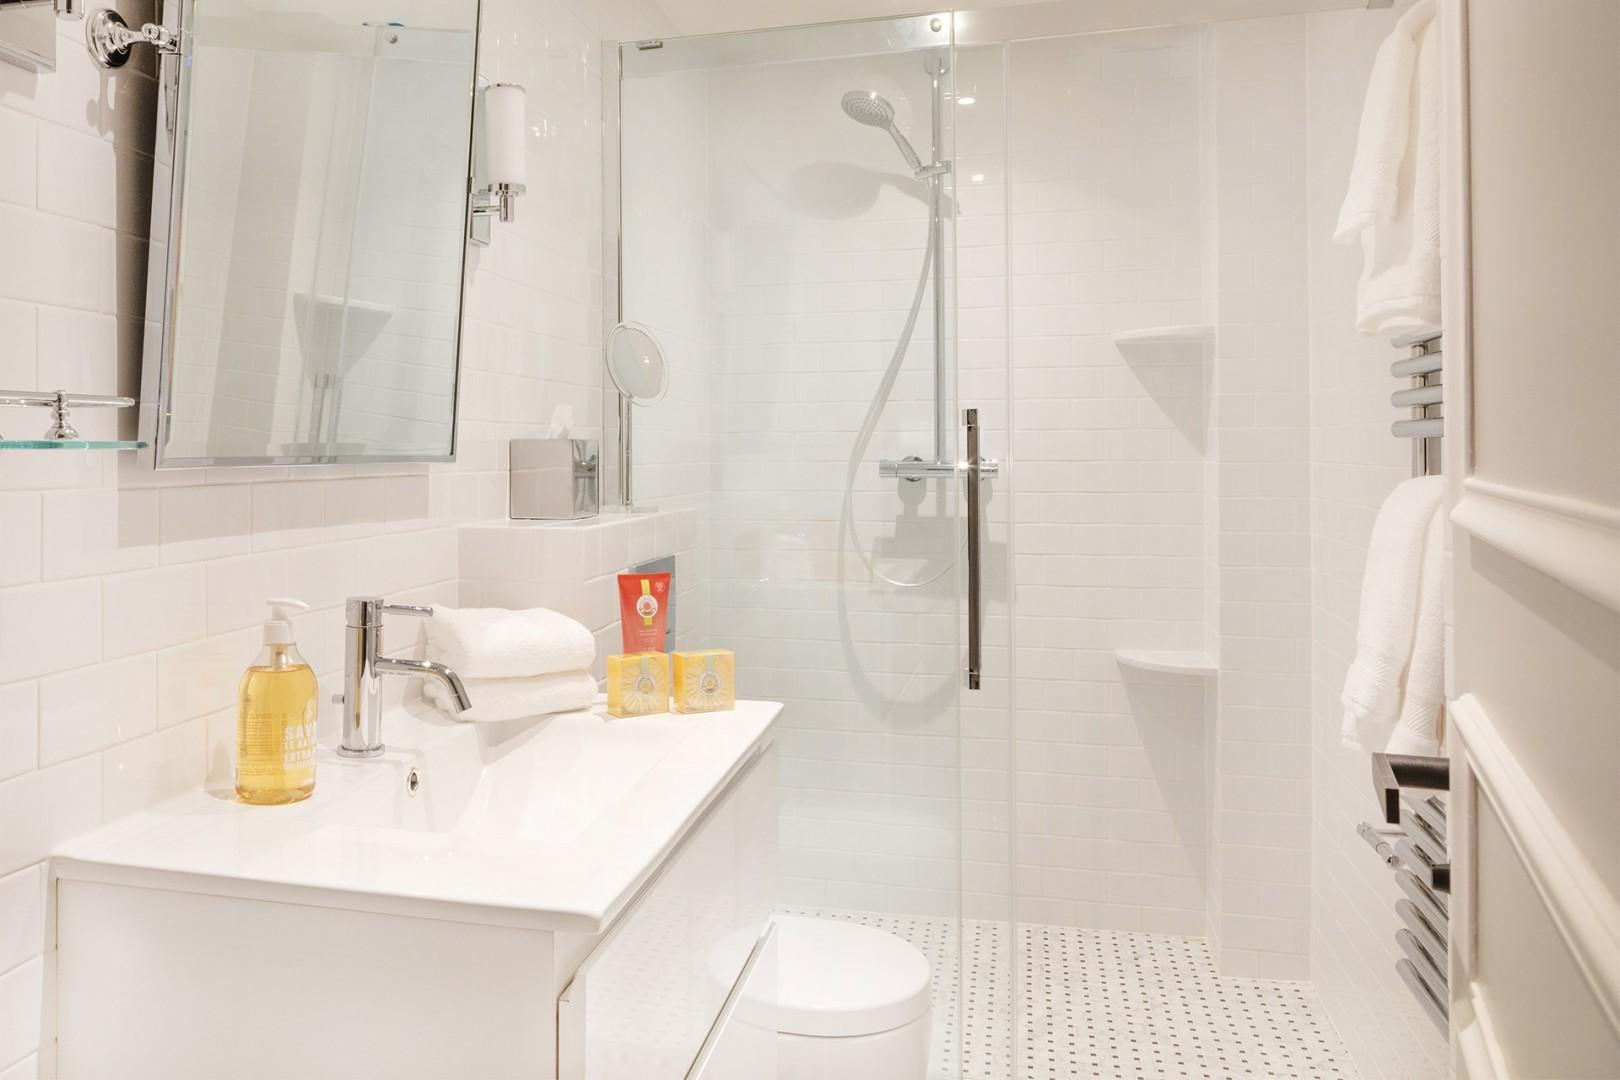 The large bathroom 2 features a shower, sink and toilet.